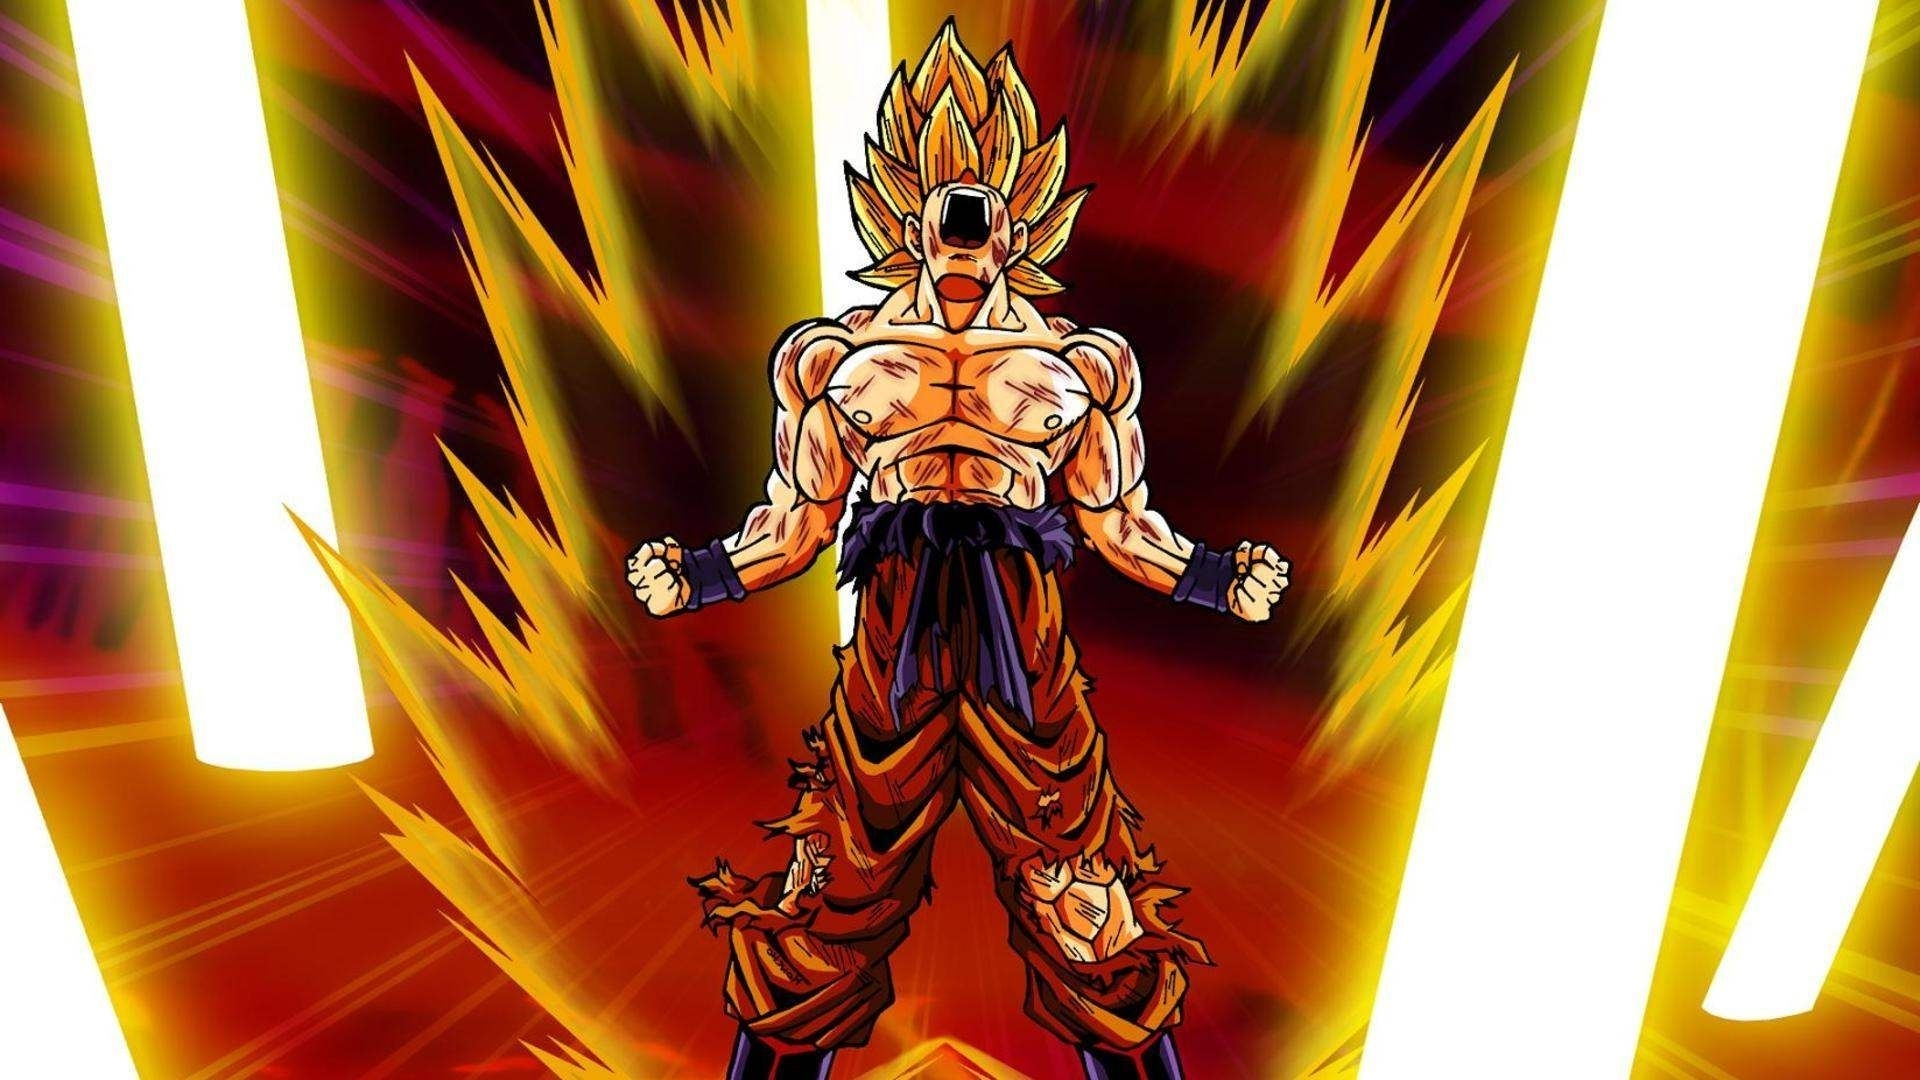 dragon ball z hd wallpapers and backgrounds 1024×768 dragon ball z